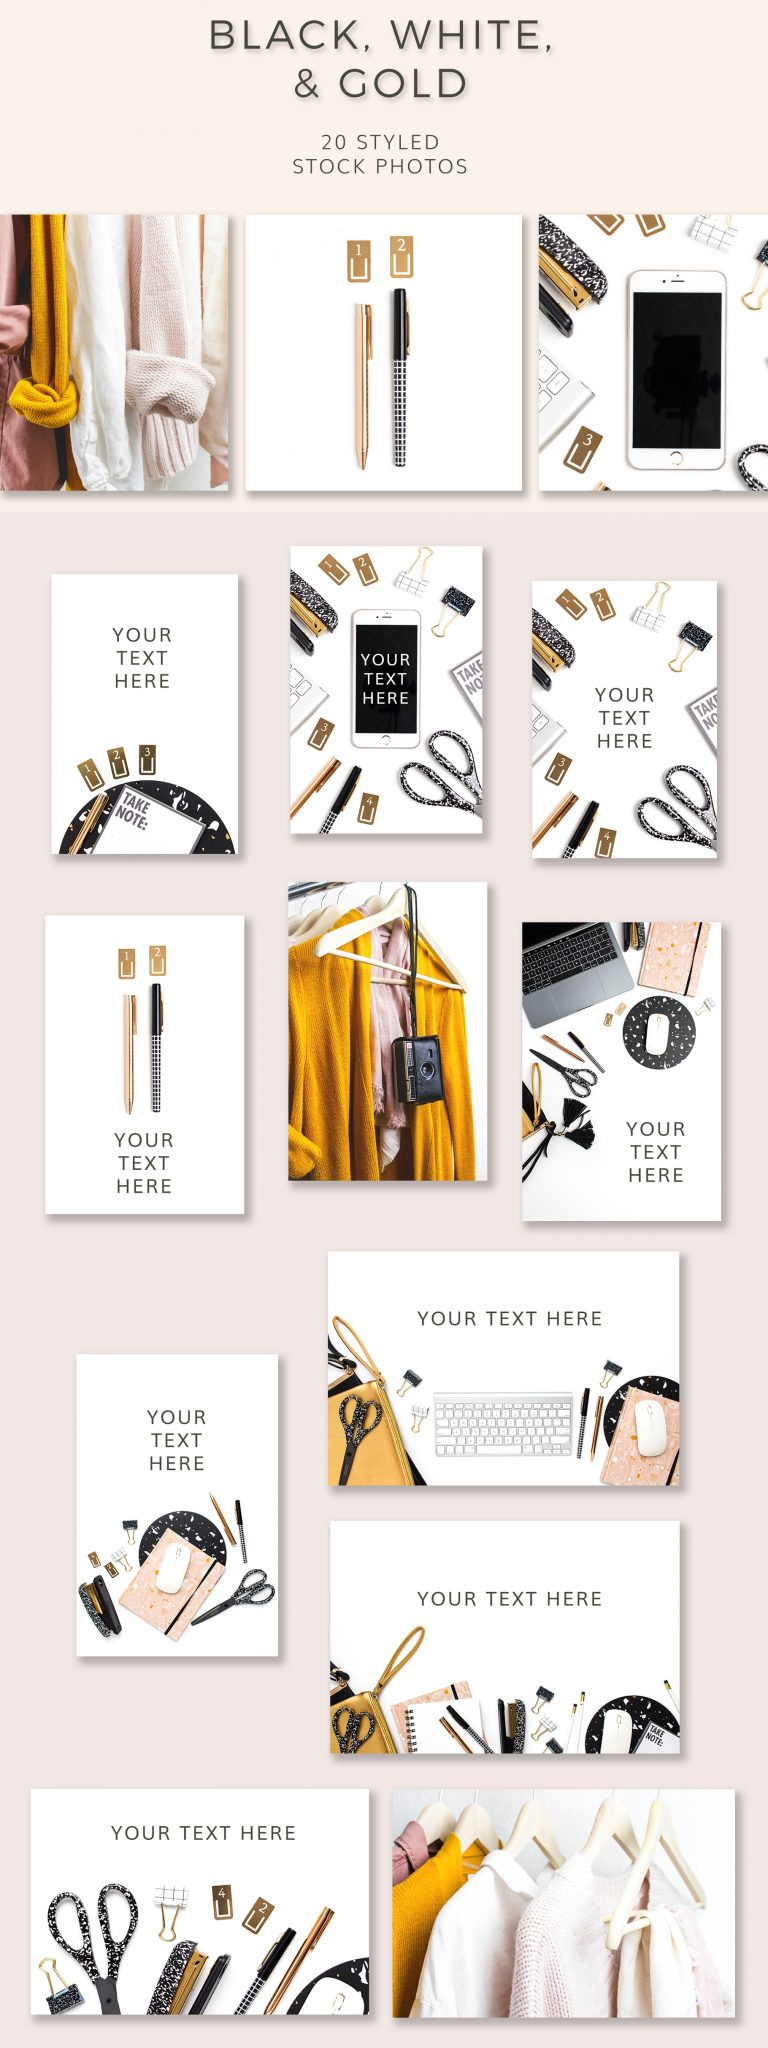 black white and gold styled stock photos